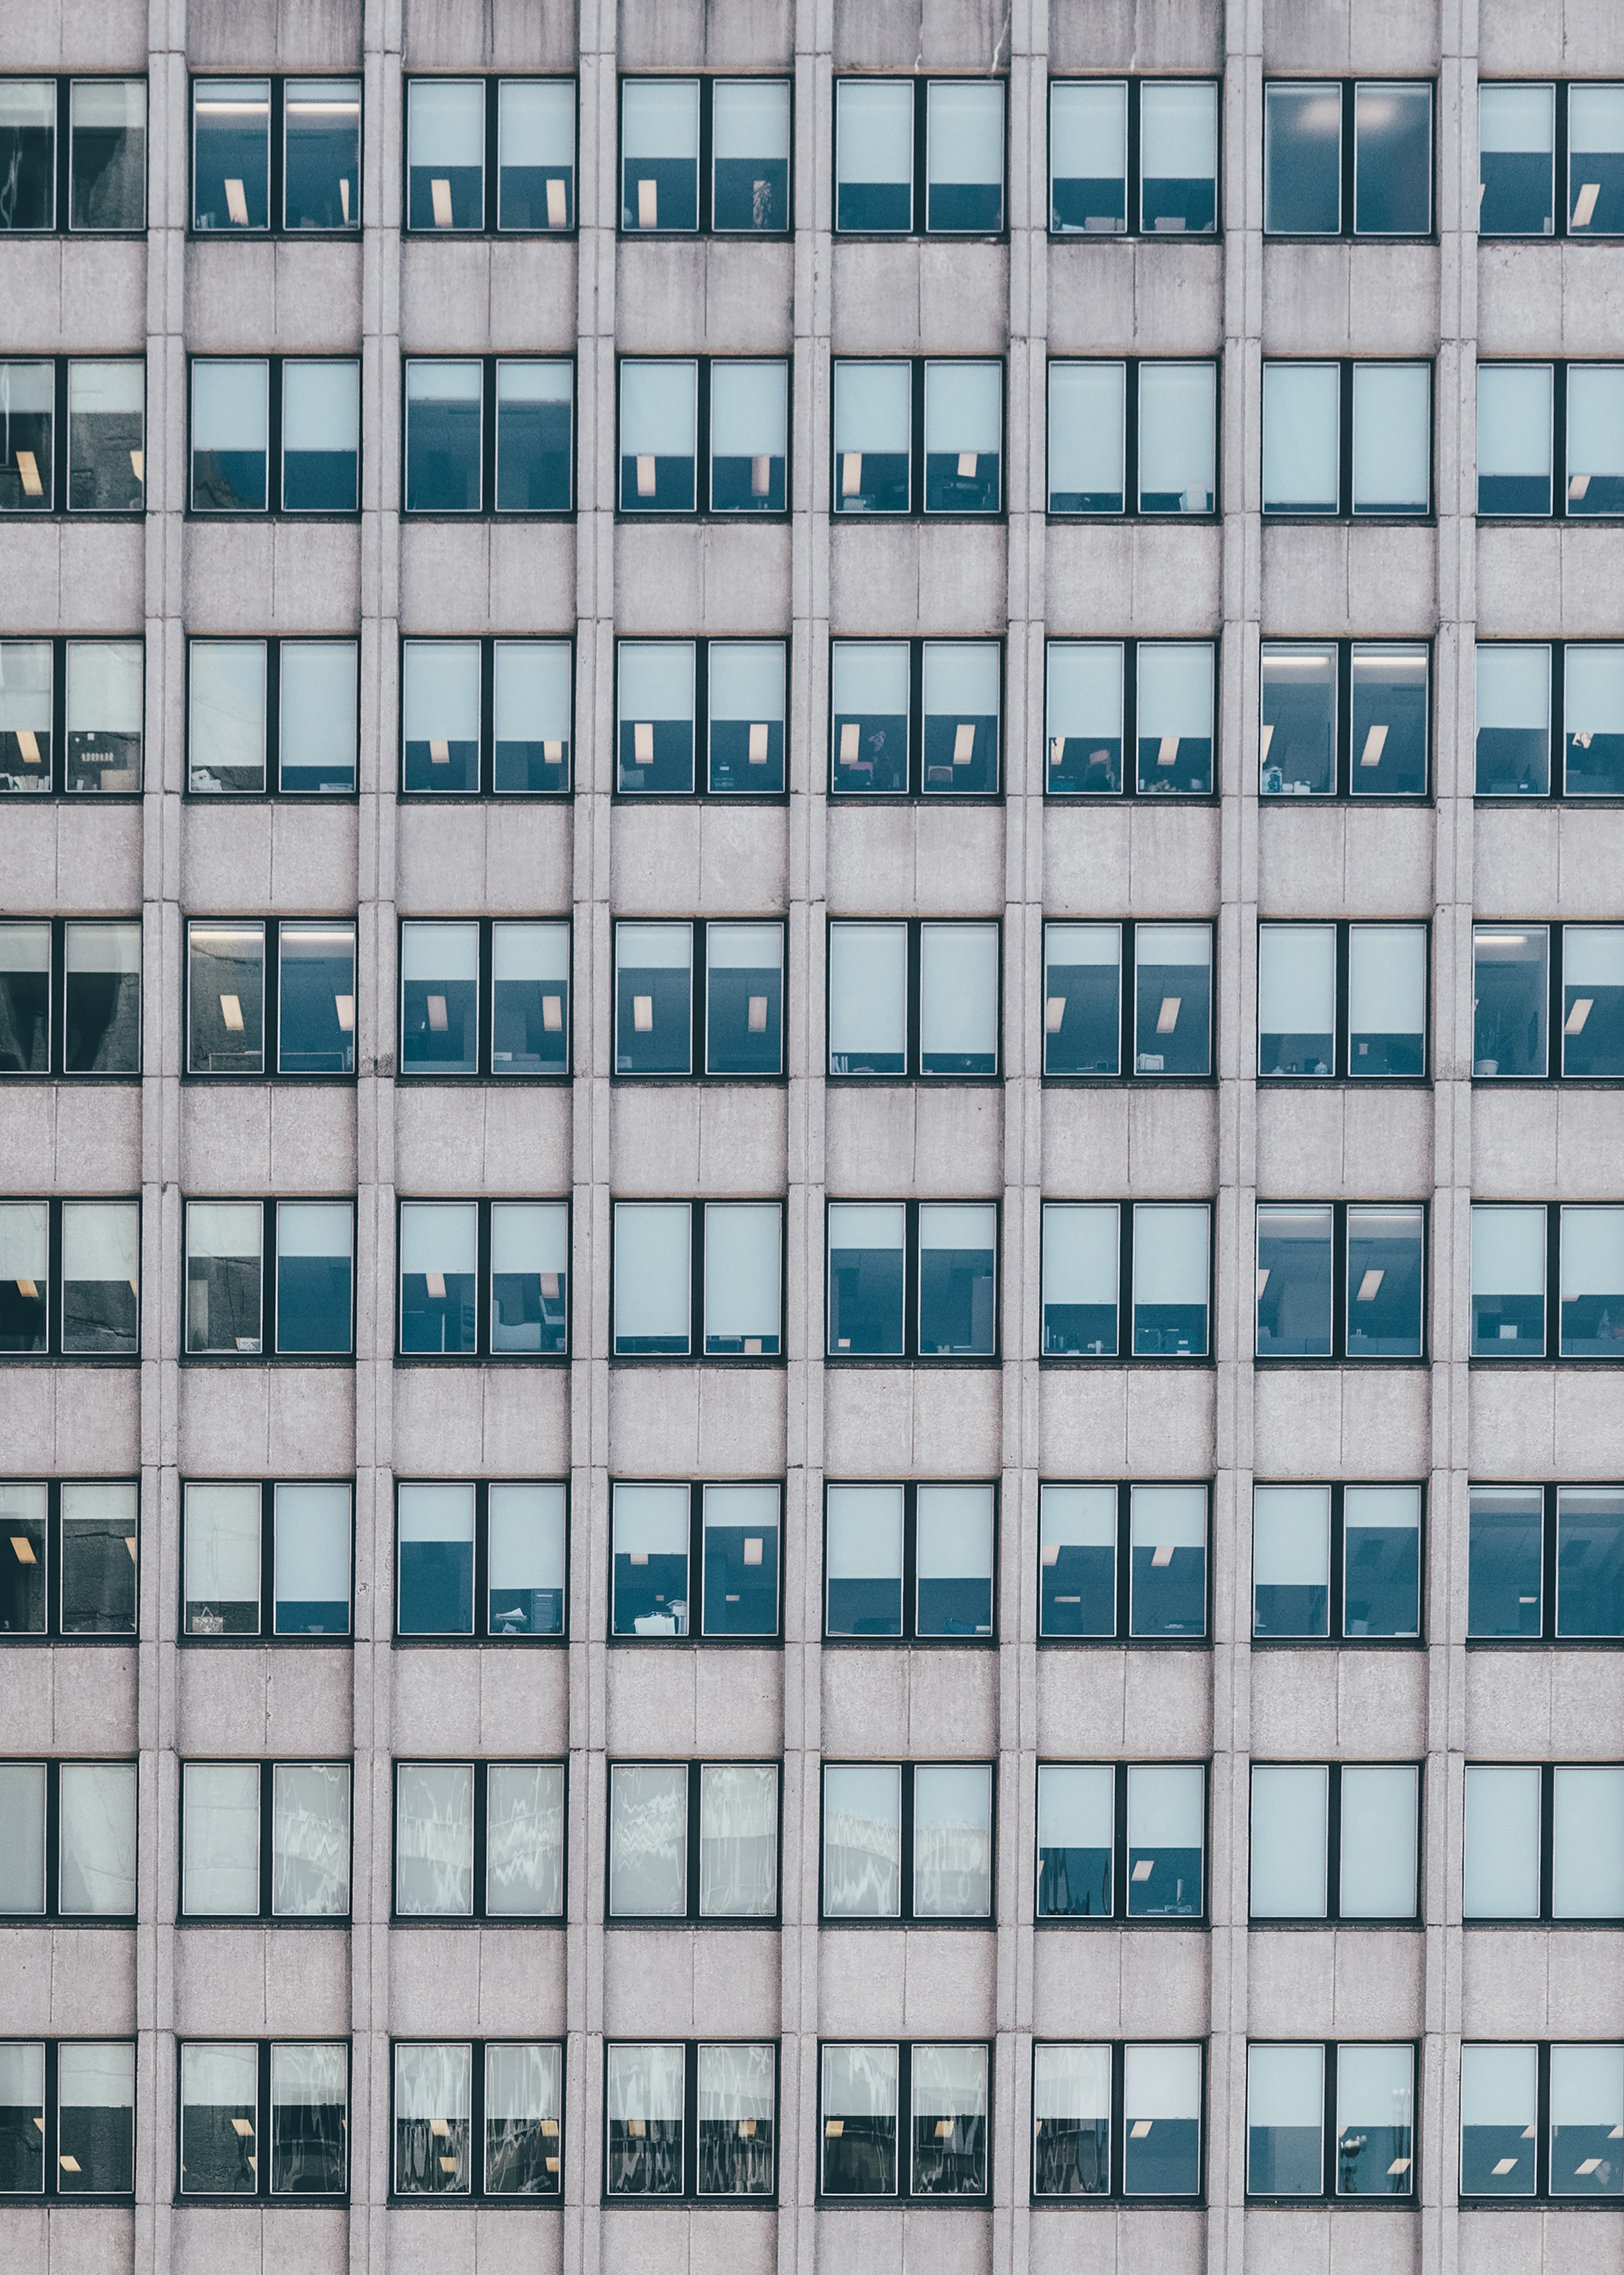 Repetition, architecture, windows, symmetry, equal